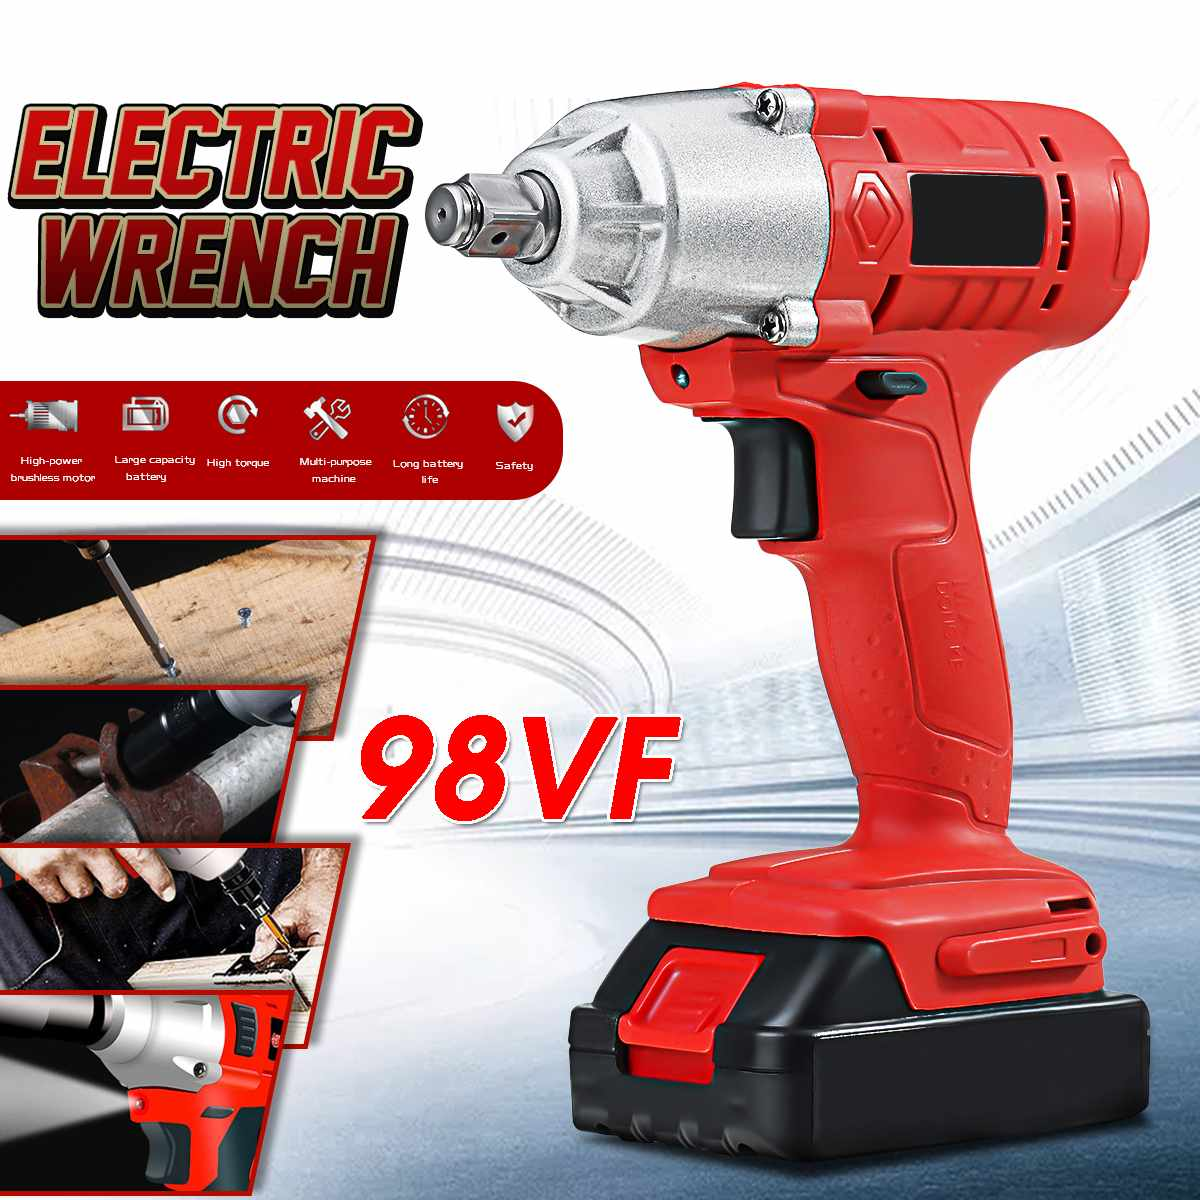 Doersupp 98VF Electric Wrench Car Repair Electric Drill Screwdriver High Efficiency Pressureless Motor W/Scattering LED Light